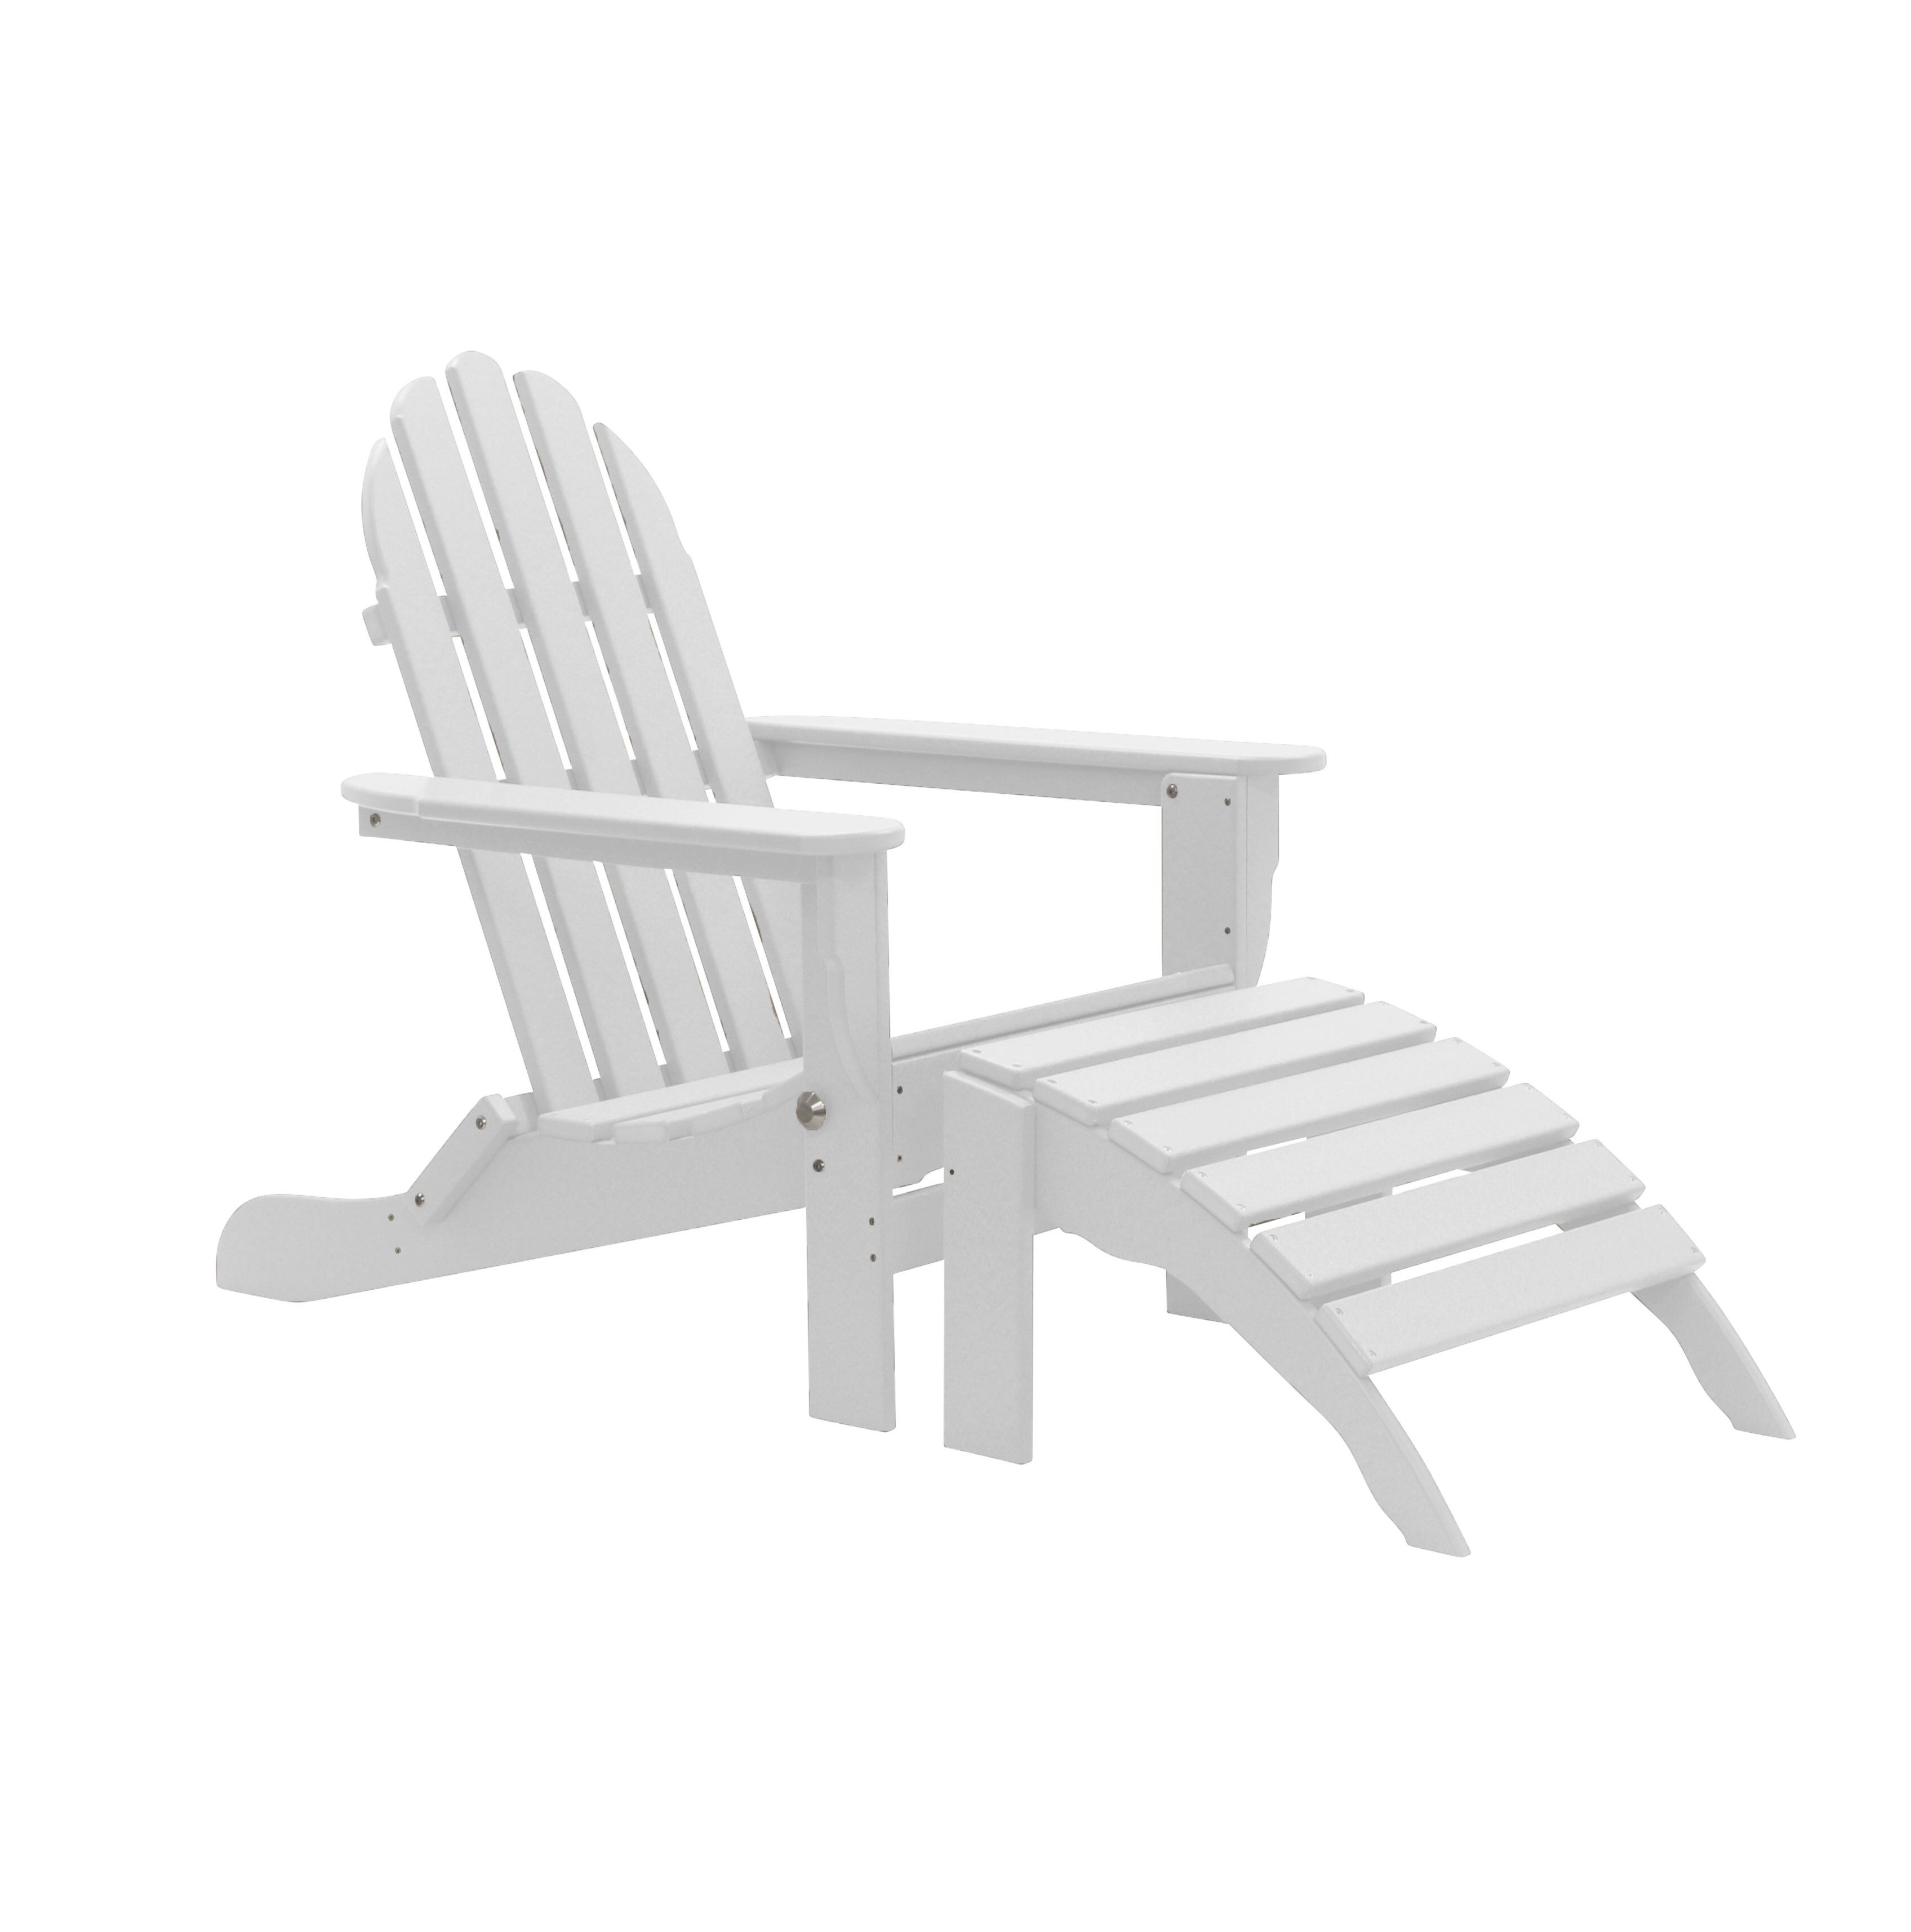 Plastic Resin Folding Adirondack Chair With Ottoman Folding Adirondack Chairs Plastic Adirondack Chairs Chair And Ottoman Set